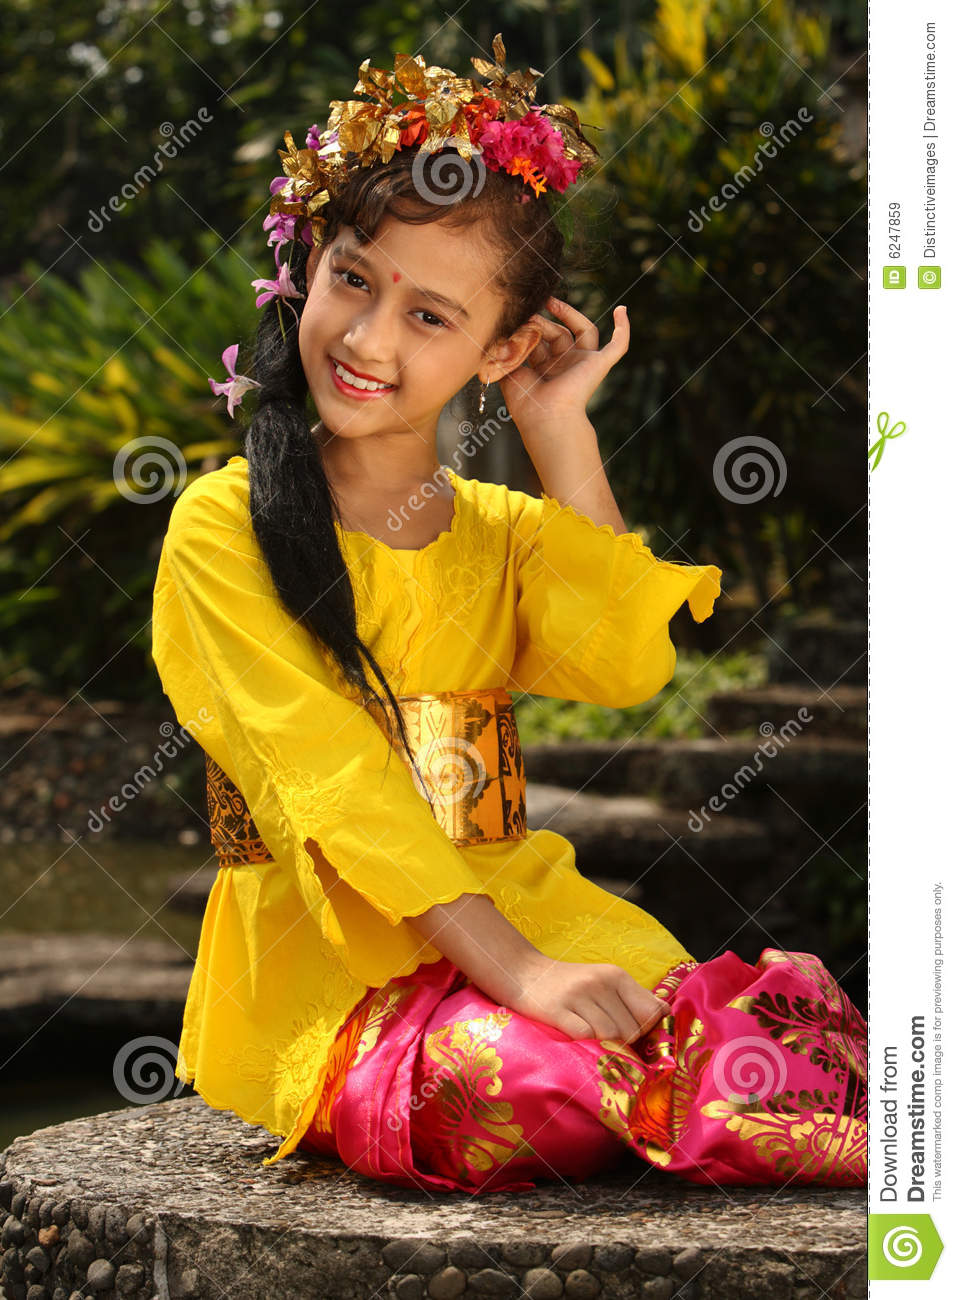 Bali Girl Royalty Free Stock Images Image 6247859